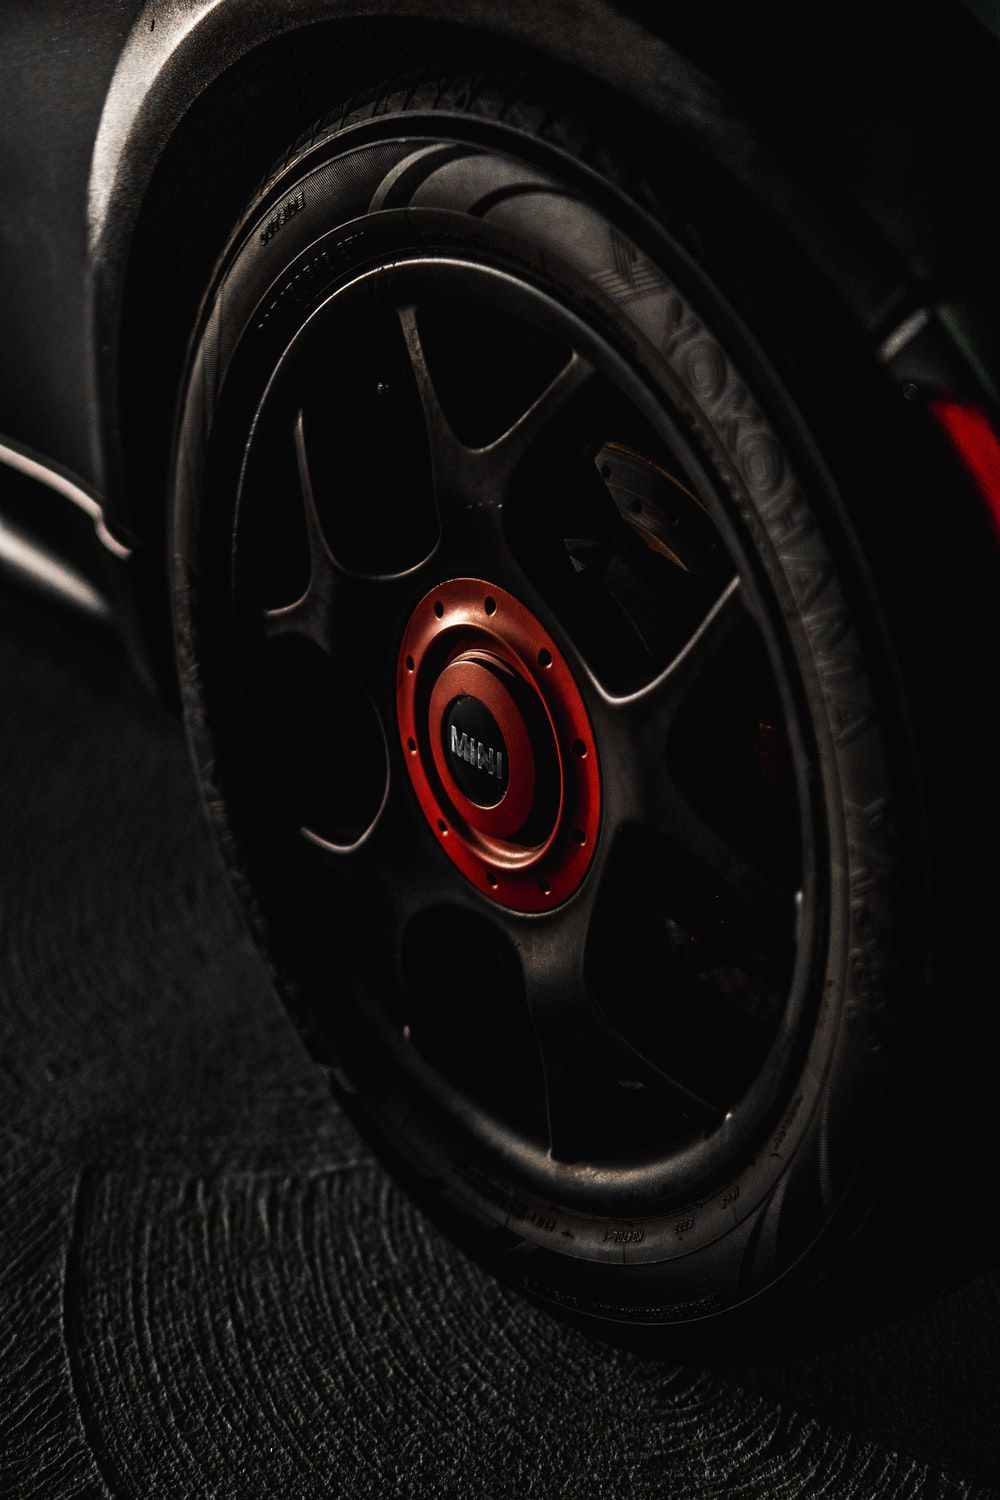 black and red multi-spoke car wheel with tire